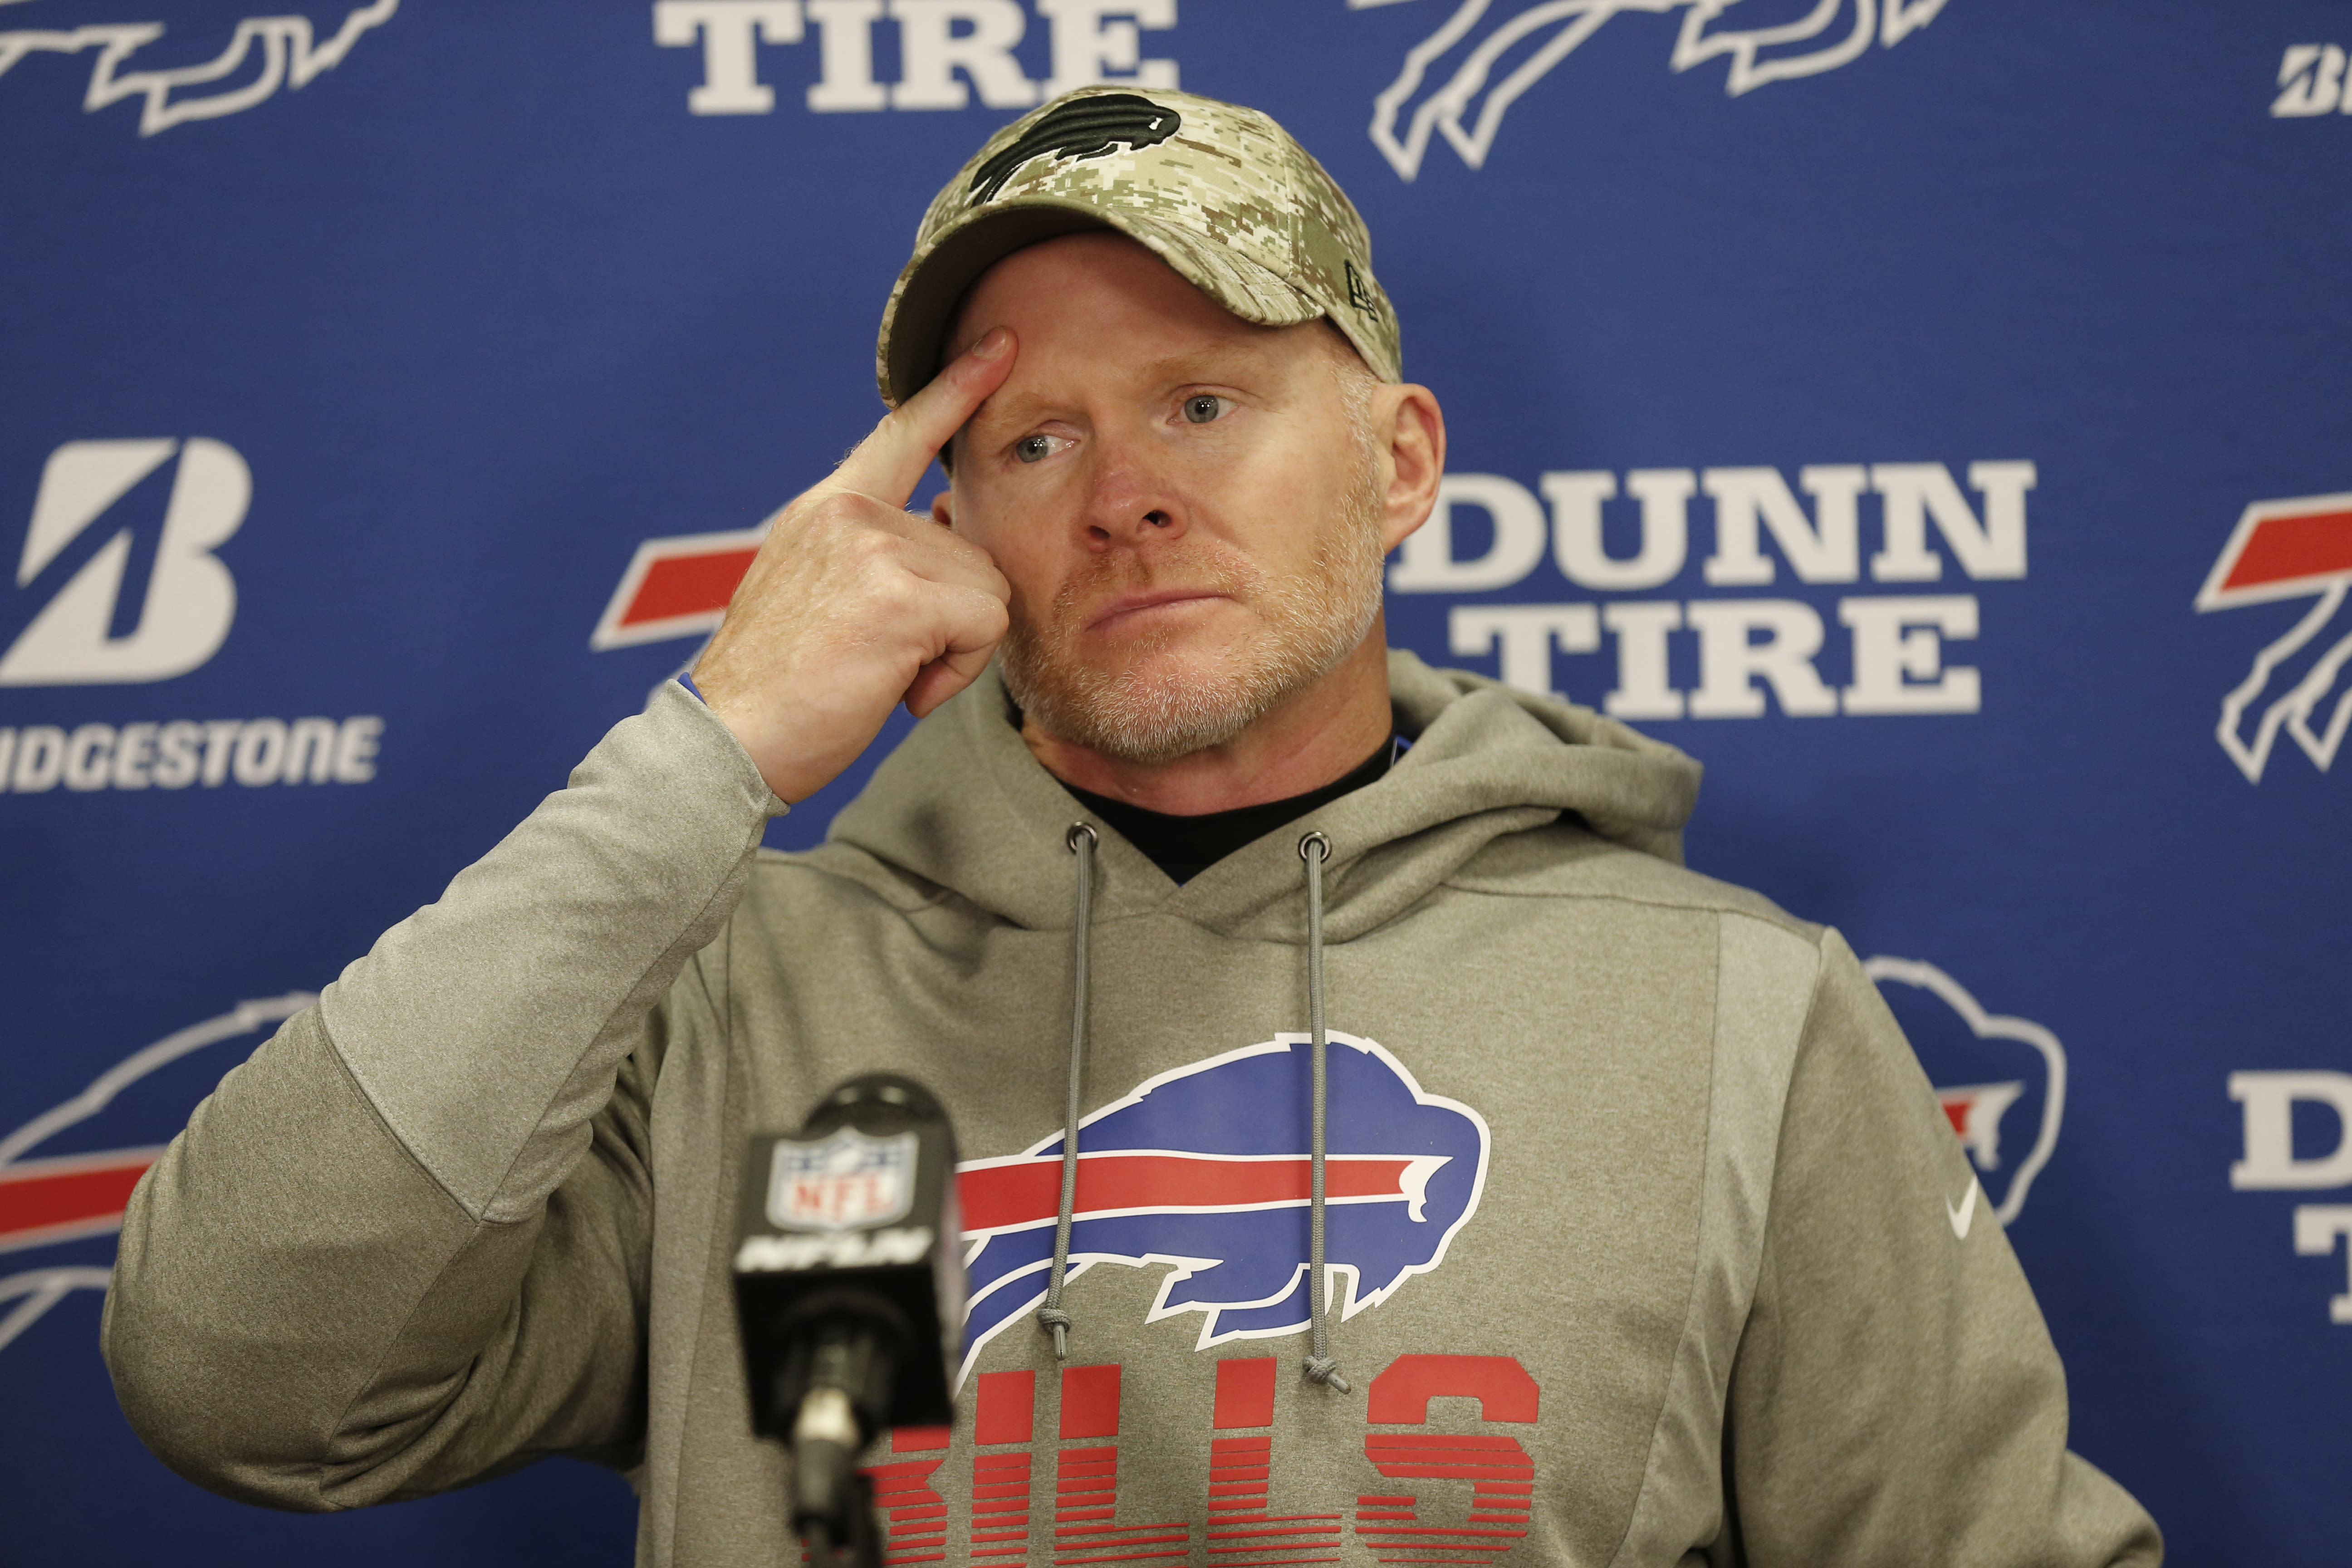 Buffalo Bills coach Sean McDermott answers questions after the Cleveland Browns defeated the Bills 19-16 in an NFL football game Sunday, Nov. 10, 2019, in Cleveland. (AP Photo/Ron Schwane)